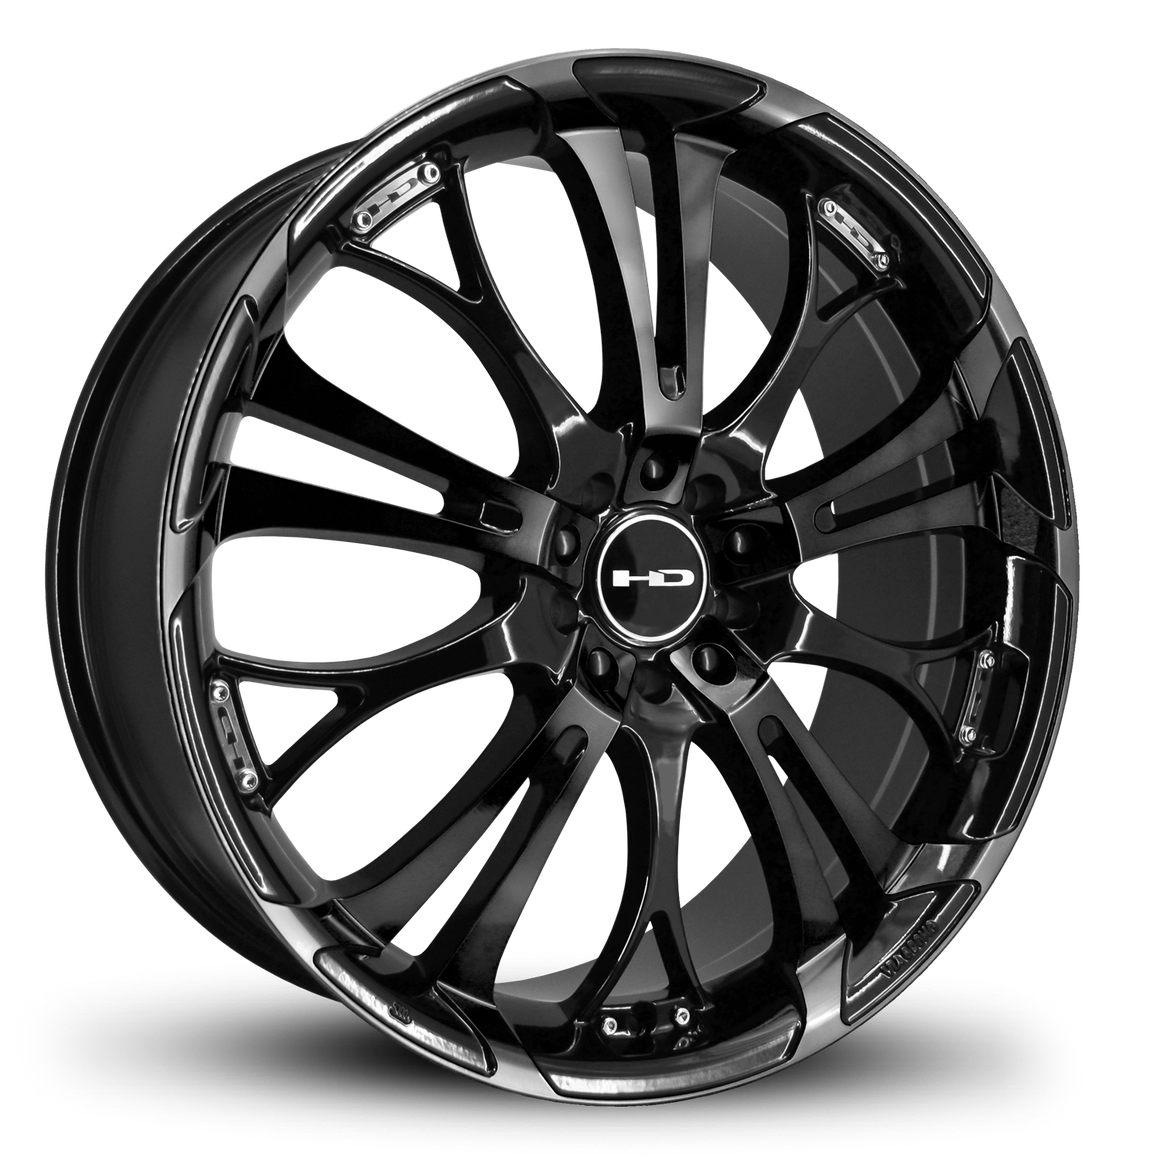 HD Wheels Passenger Car Wheels 17x7.0 | 5x100/5x114.3 | et40mm | 5.6 in | 73.1mm HD Wheels Spinout | All Gloss Black